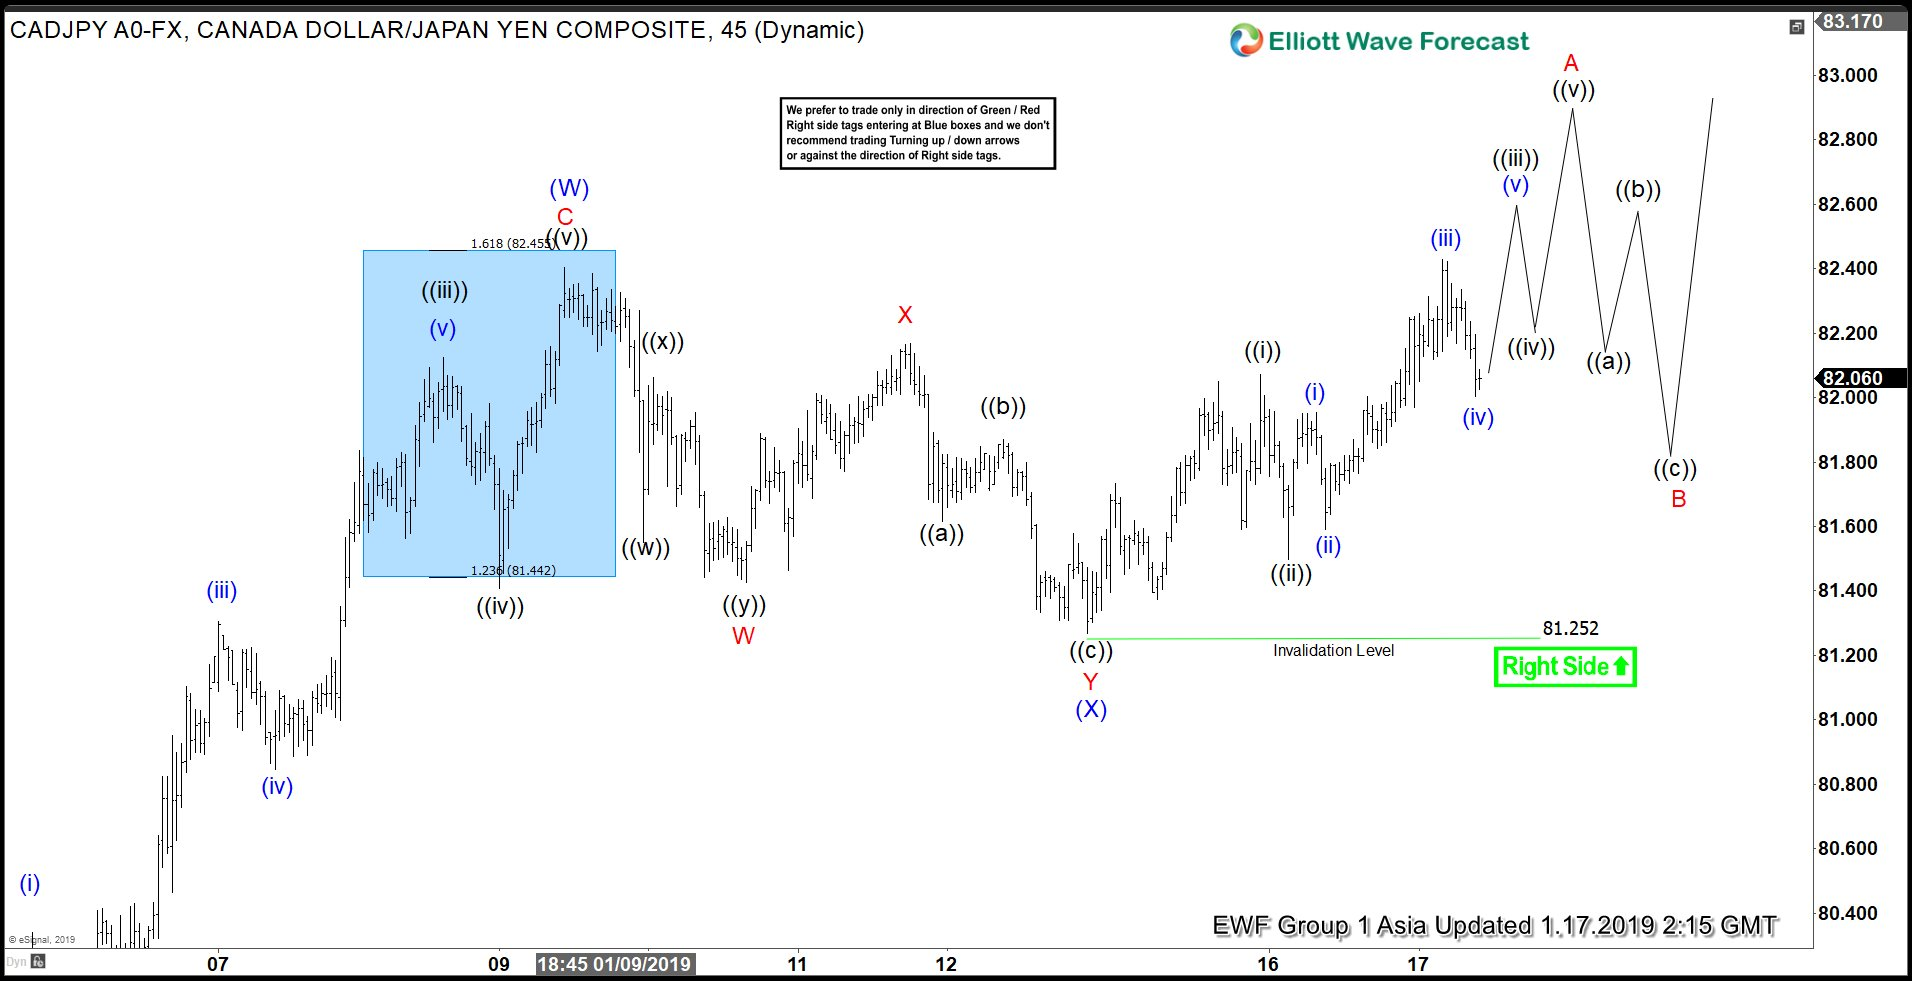 Elliott Wave View: CADJPY Starts Next Bullish Leg